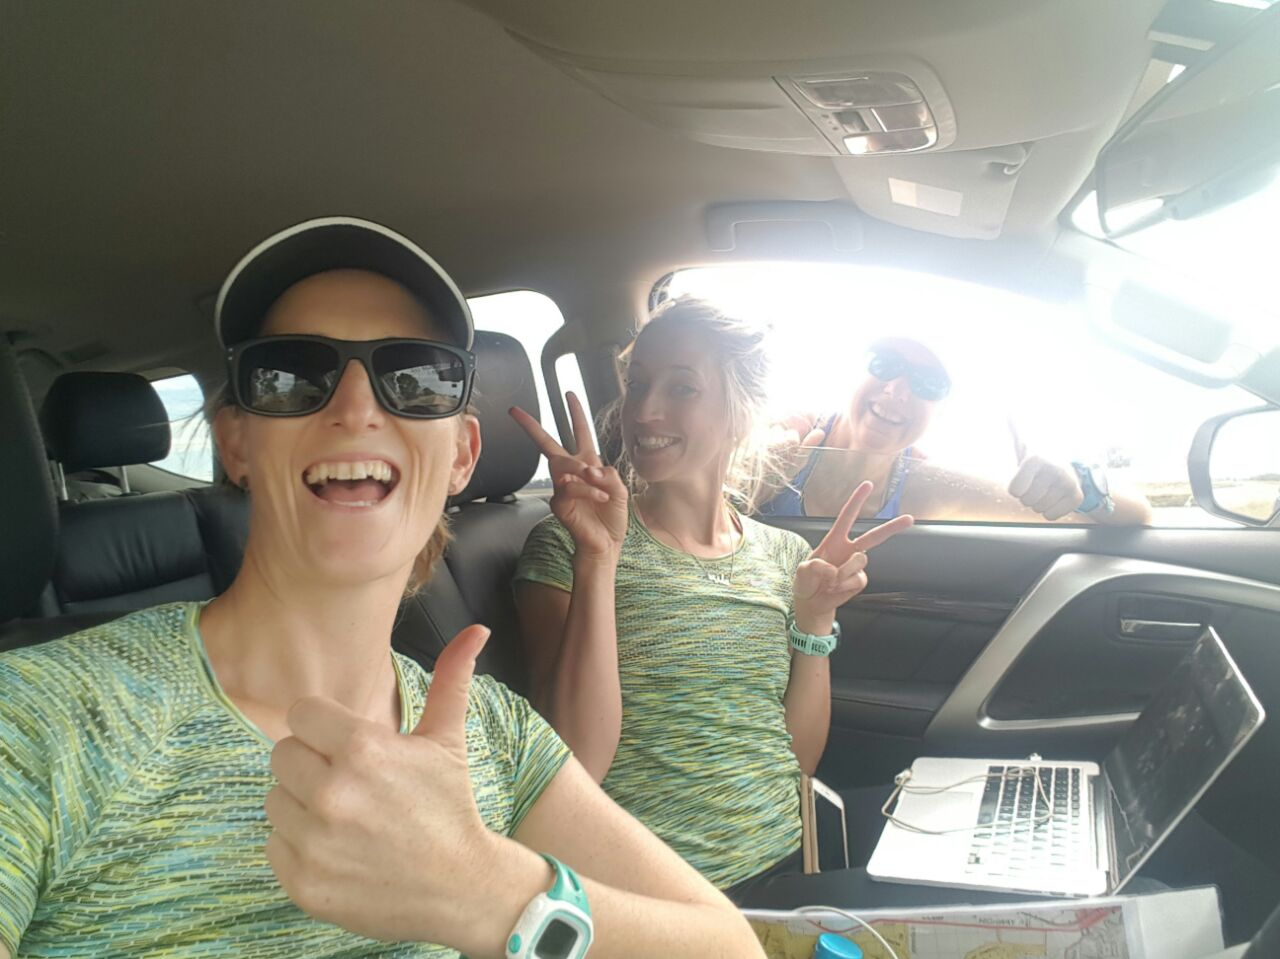 Working in the support car.